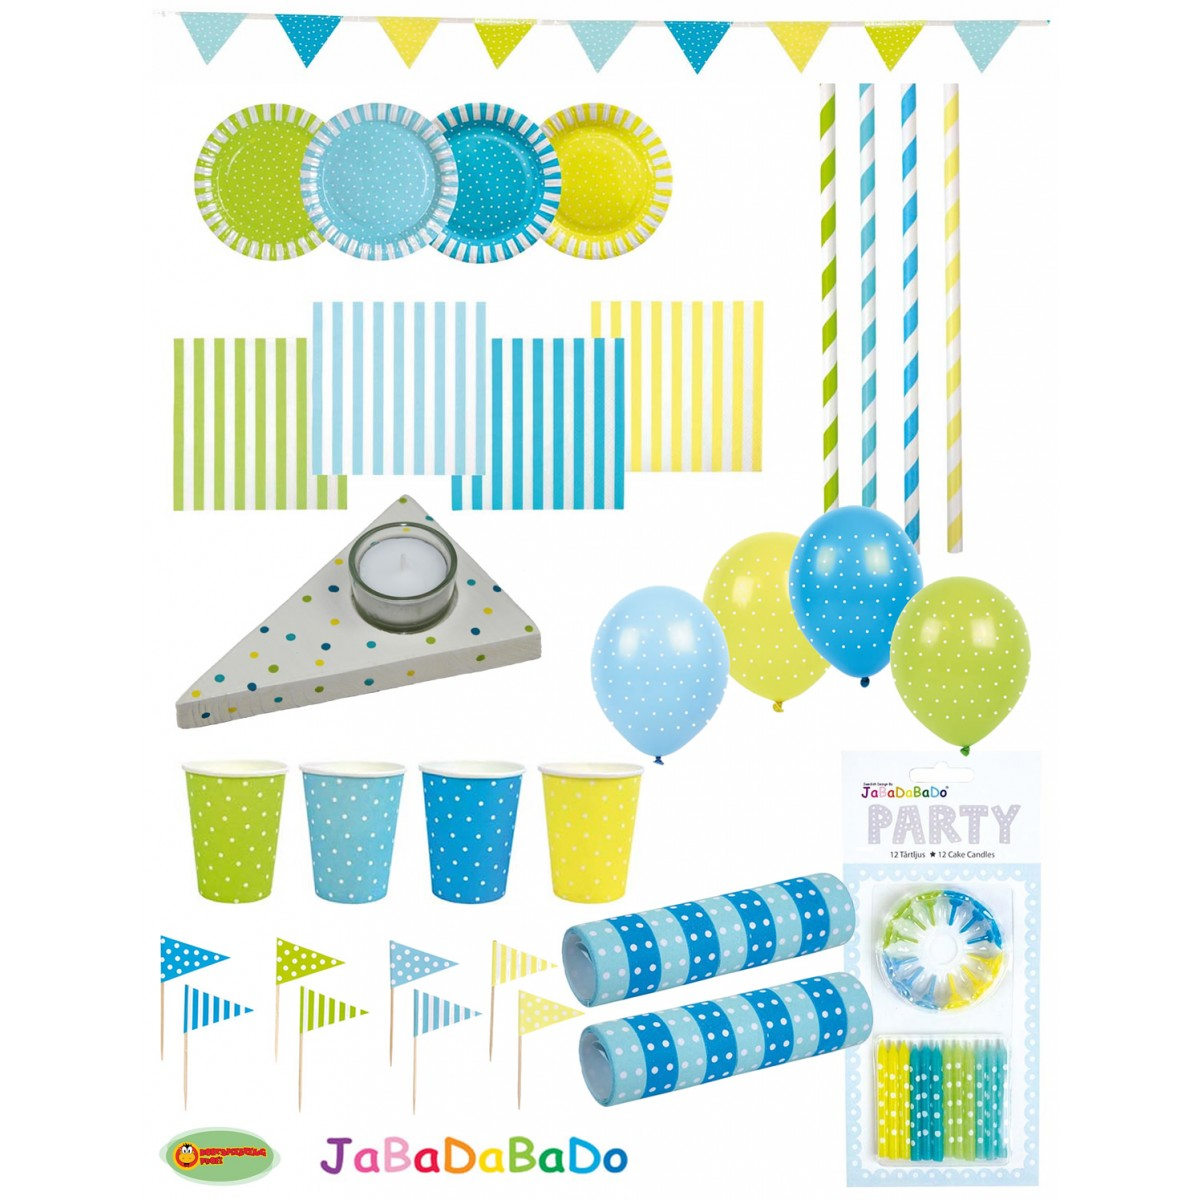 JaBaDaBaDo Party Set Dots Blau Gelb 100 Teile